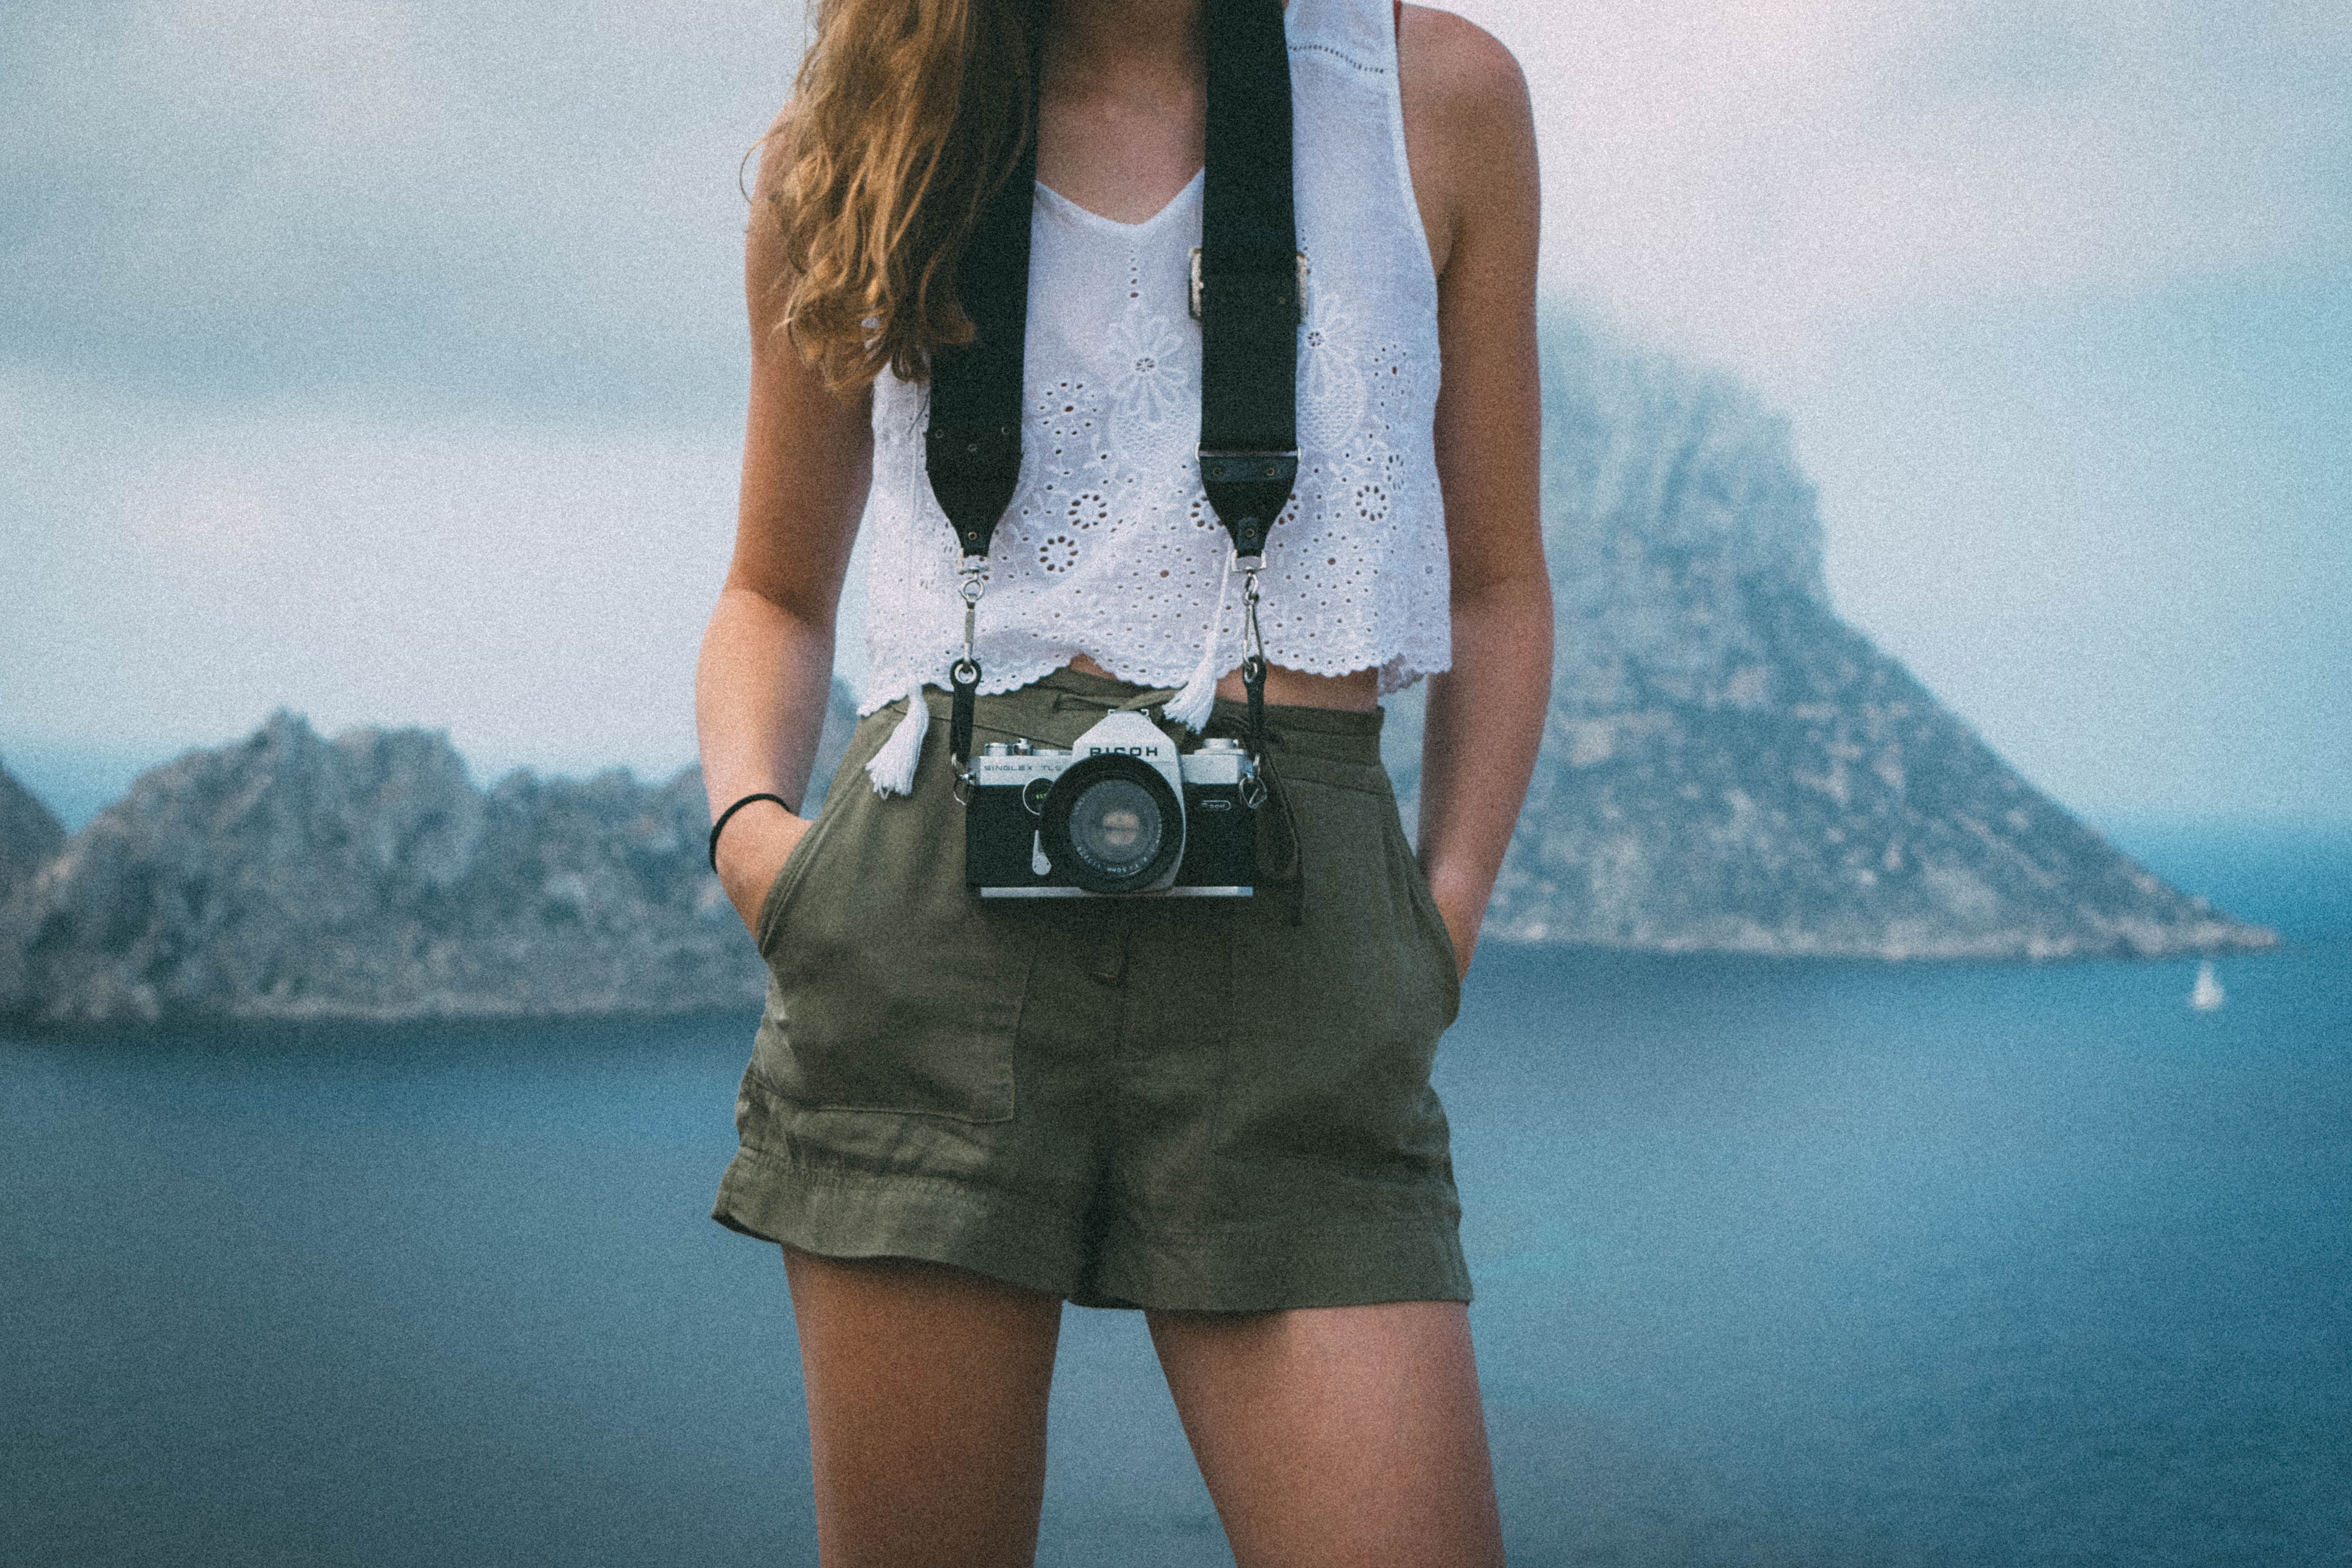 A woman wearing a white eyelet top, green shorts, and a camera hanging around her neck in Es Vedra